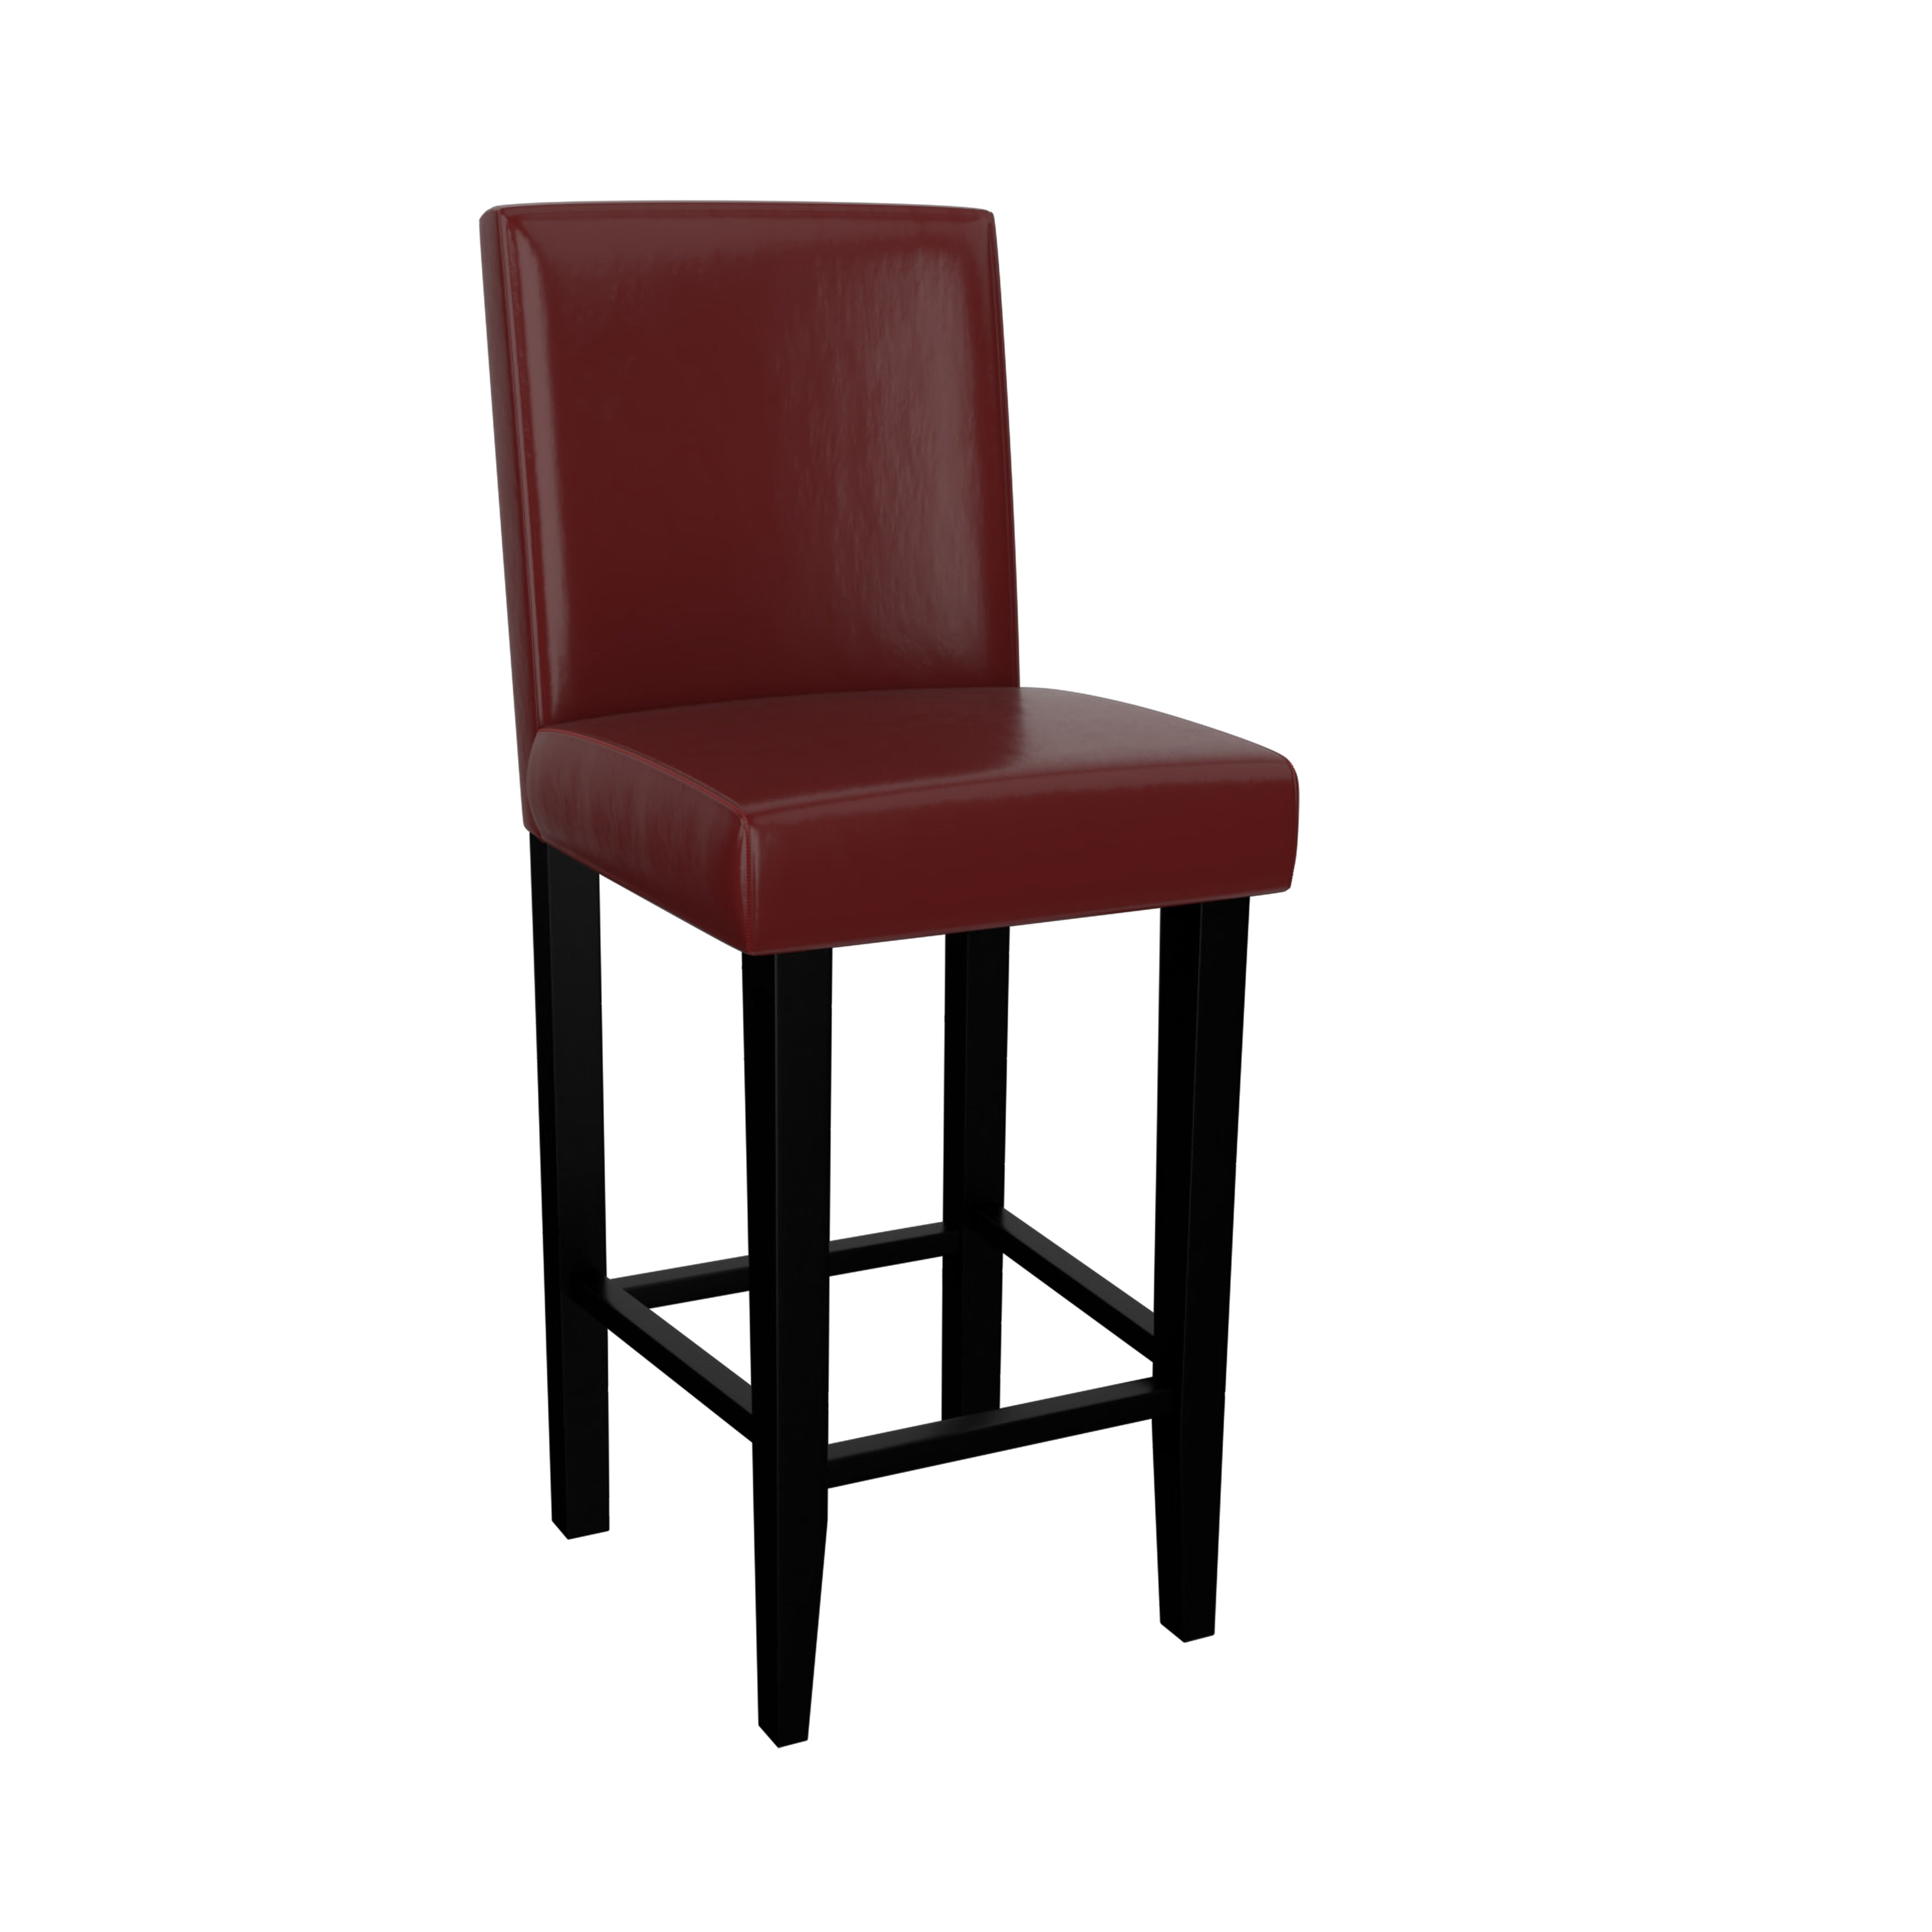 Amazing Copper Grove Humboldt 29 Inch Faux Leather Bar Height Barstool Set Of 2 Pdpeps Interior Chair Design Pdpepsorg